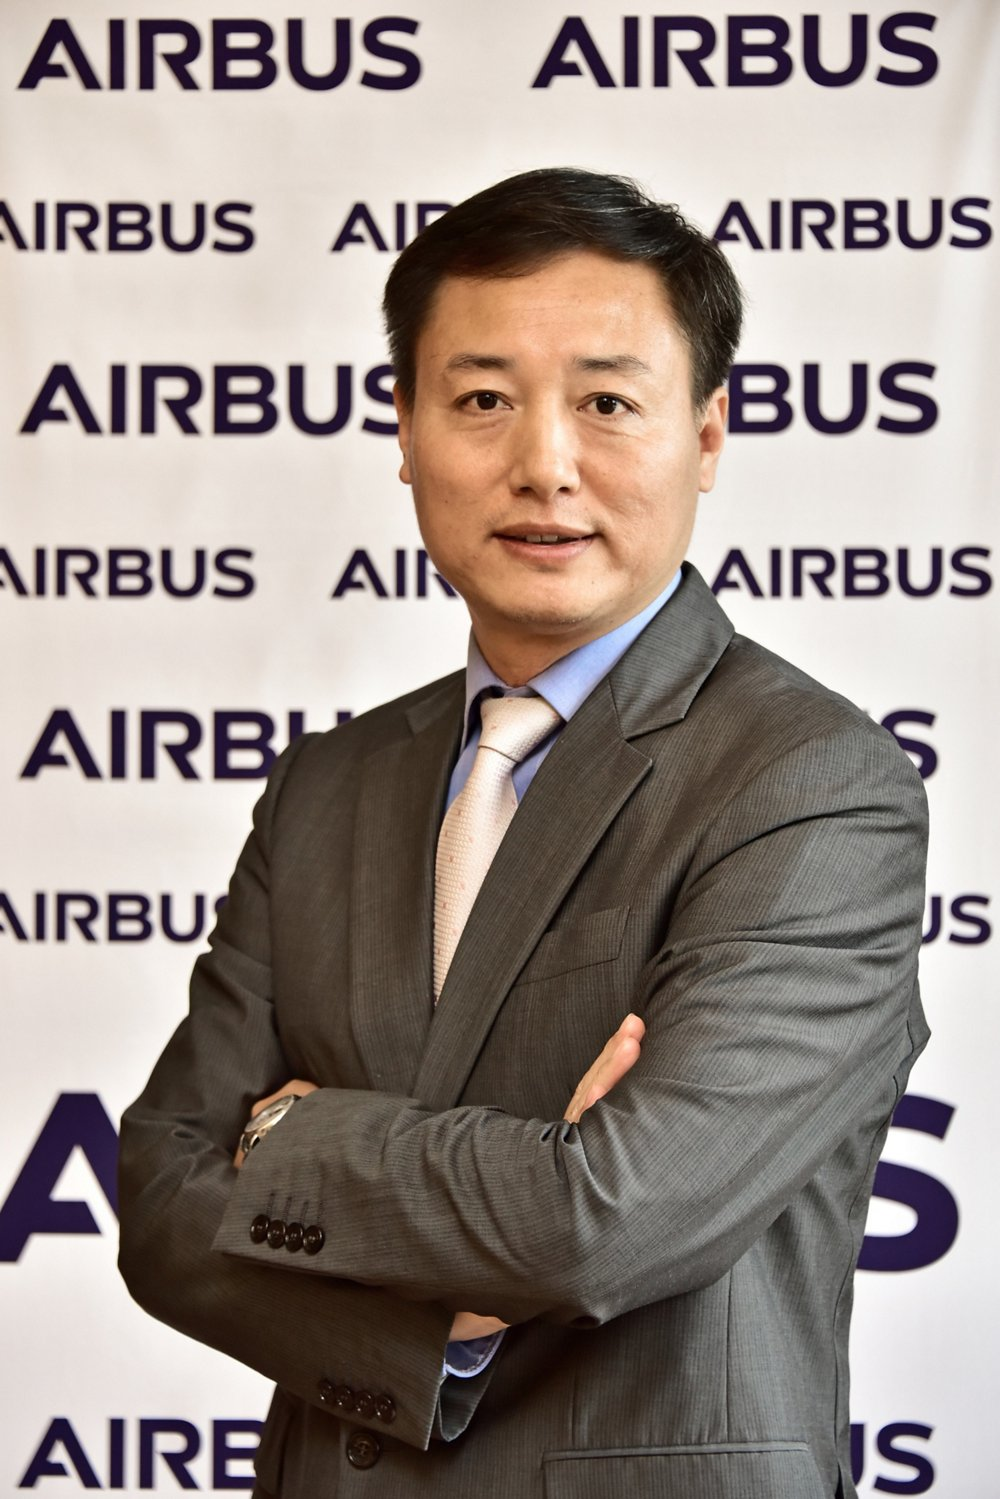 CEO of Airbus China